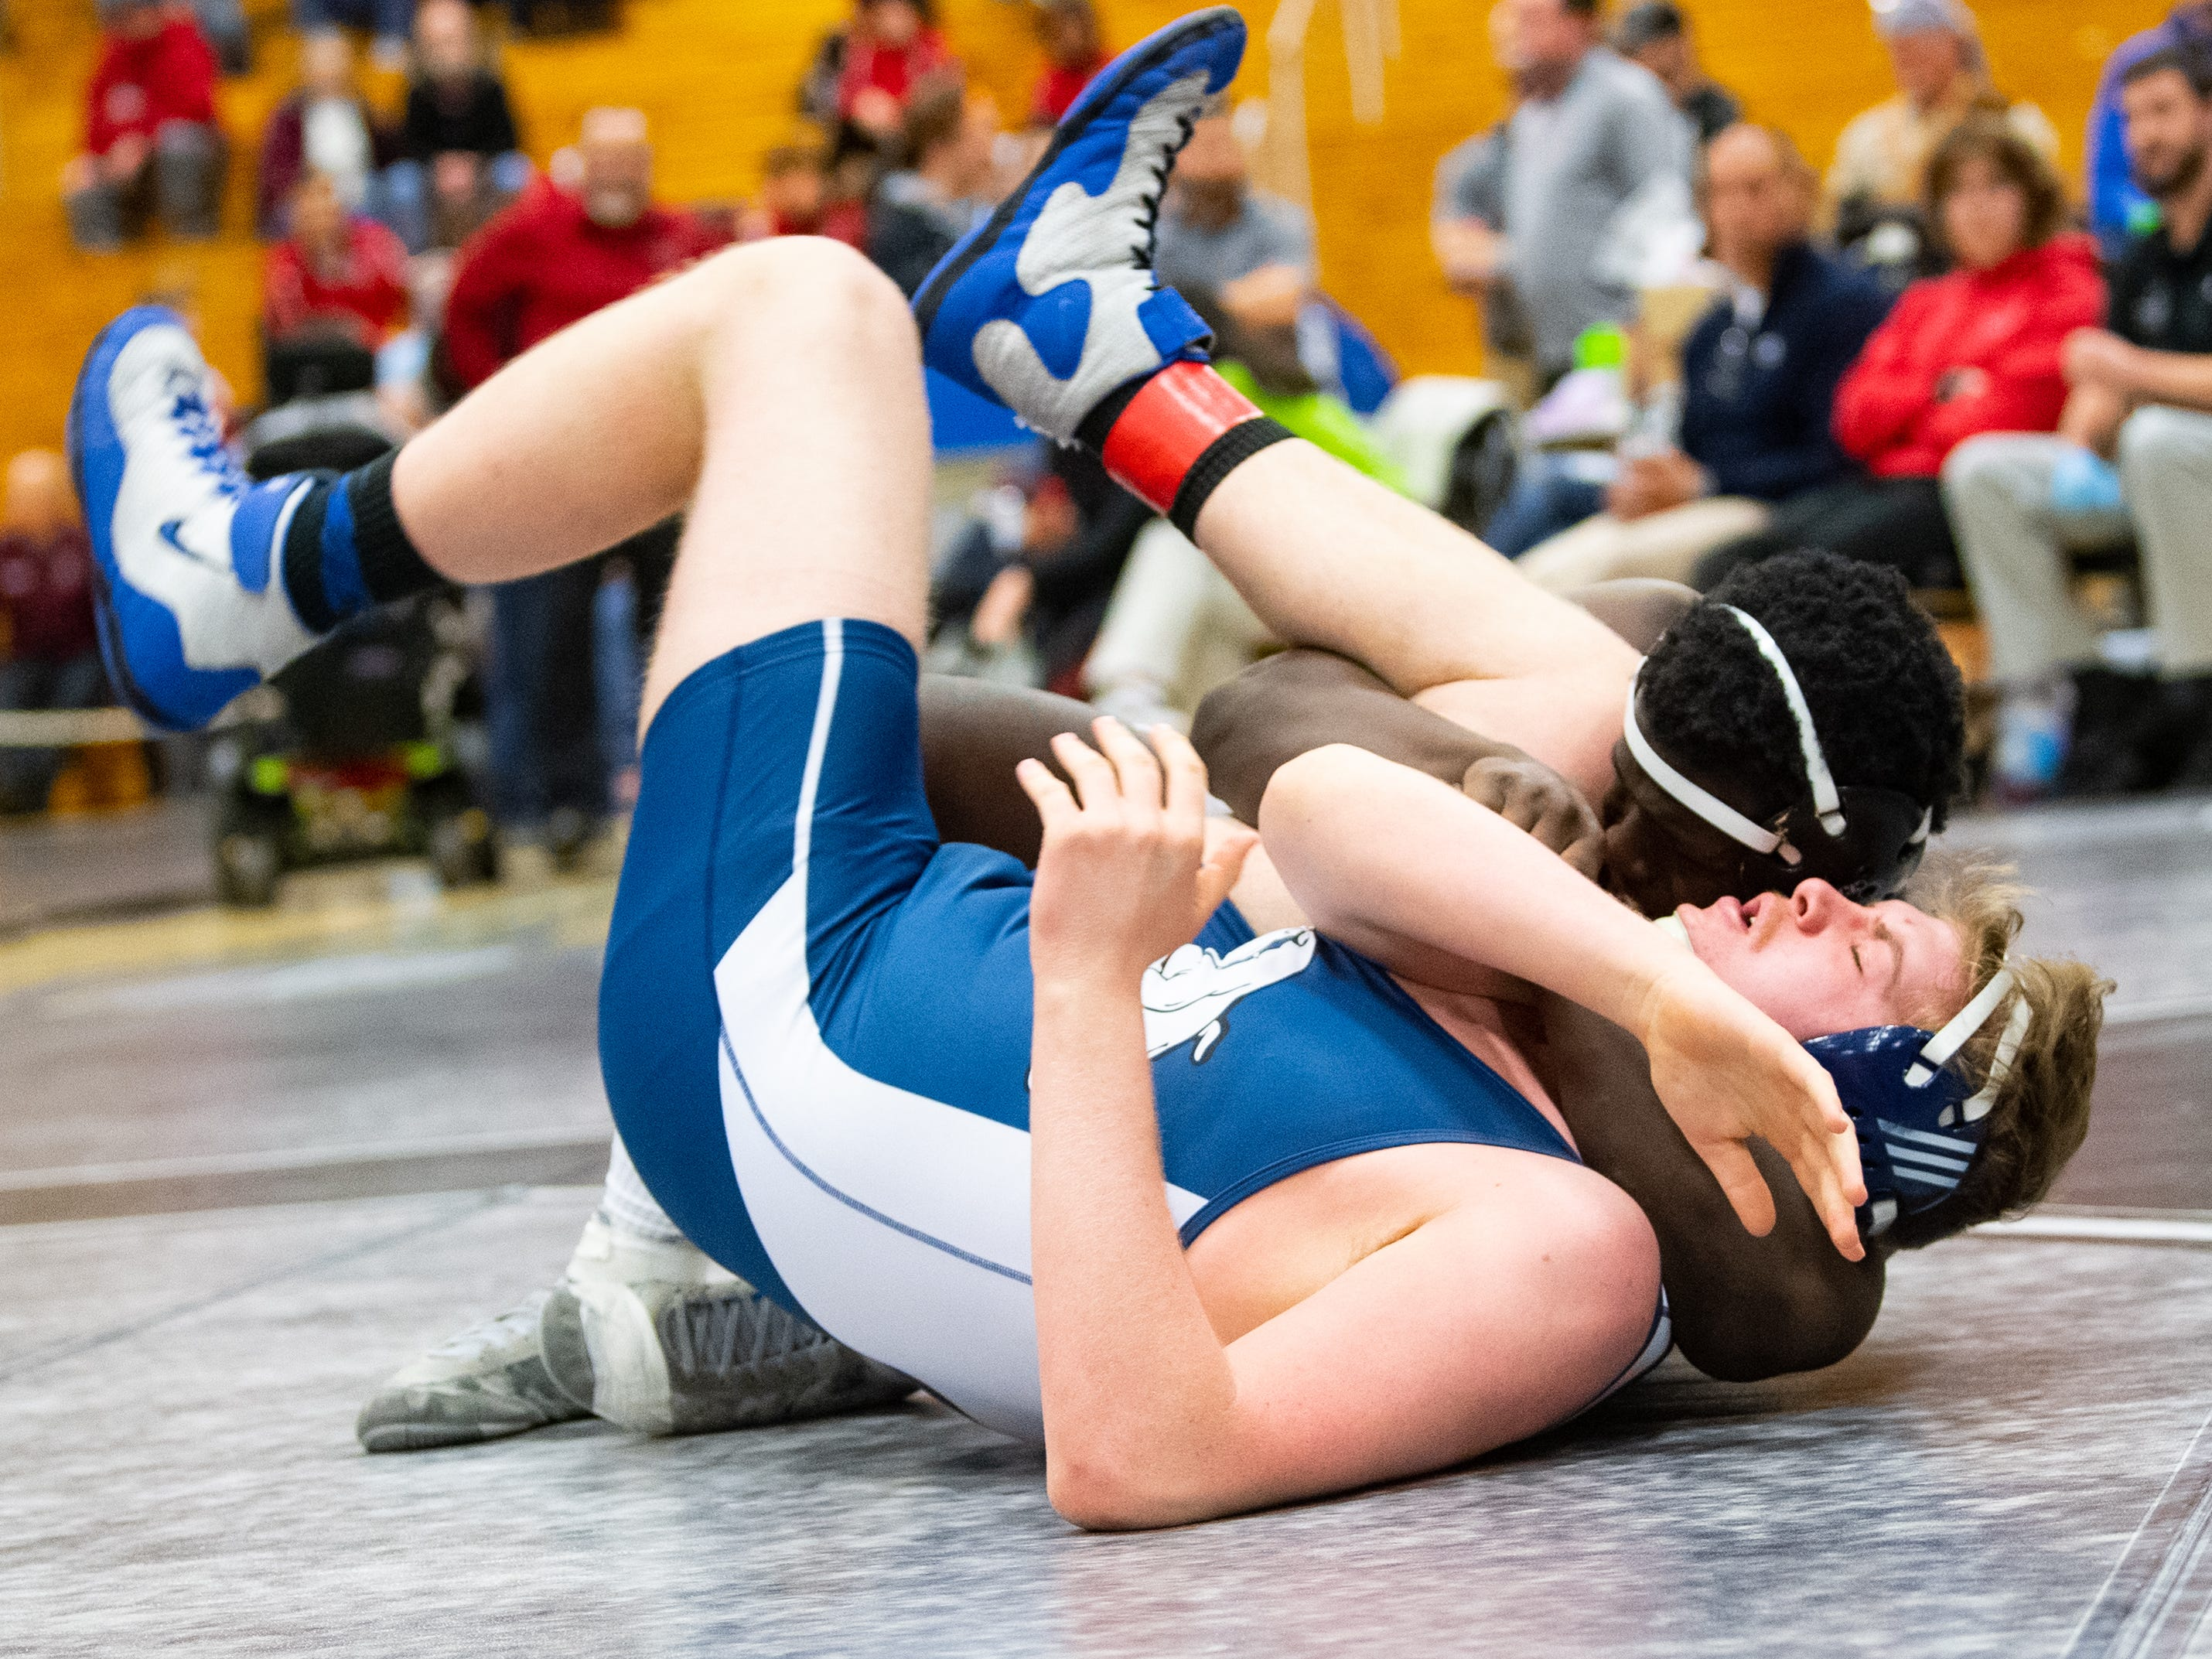 Dallastown's Jamal Brandon looks to pin F. Veloce of West York during the PIAA District 3 Section IV Wrestling Championships, Saturday, February 16, 2019 at South Western High School.